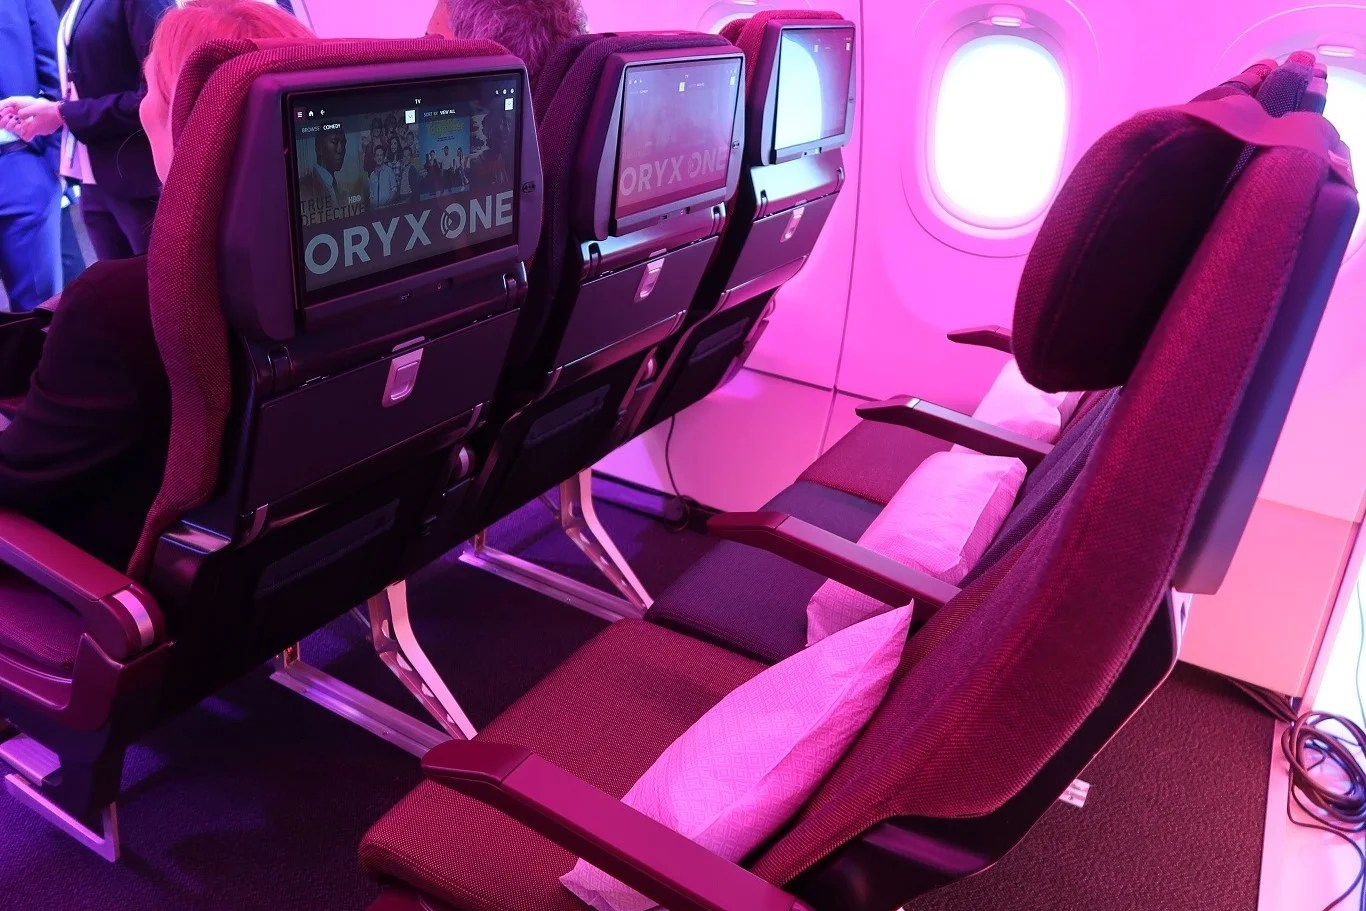 Everything you need to know about Qatar Airways' inflight entertainment